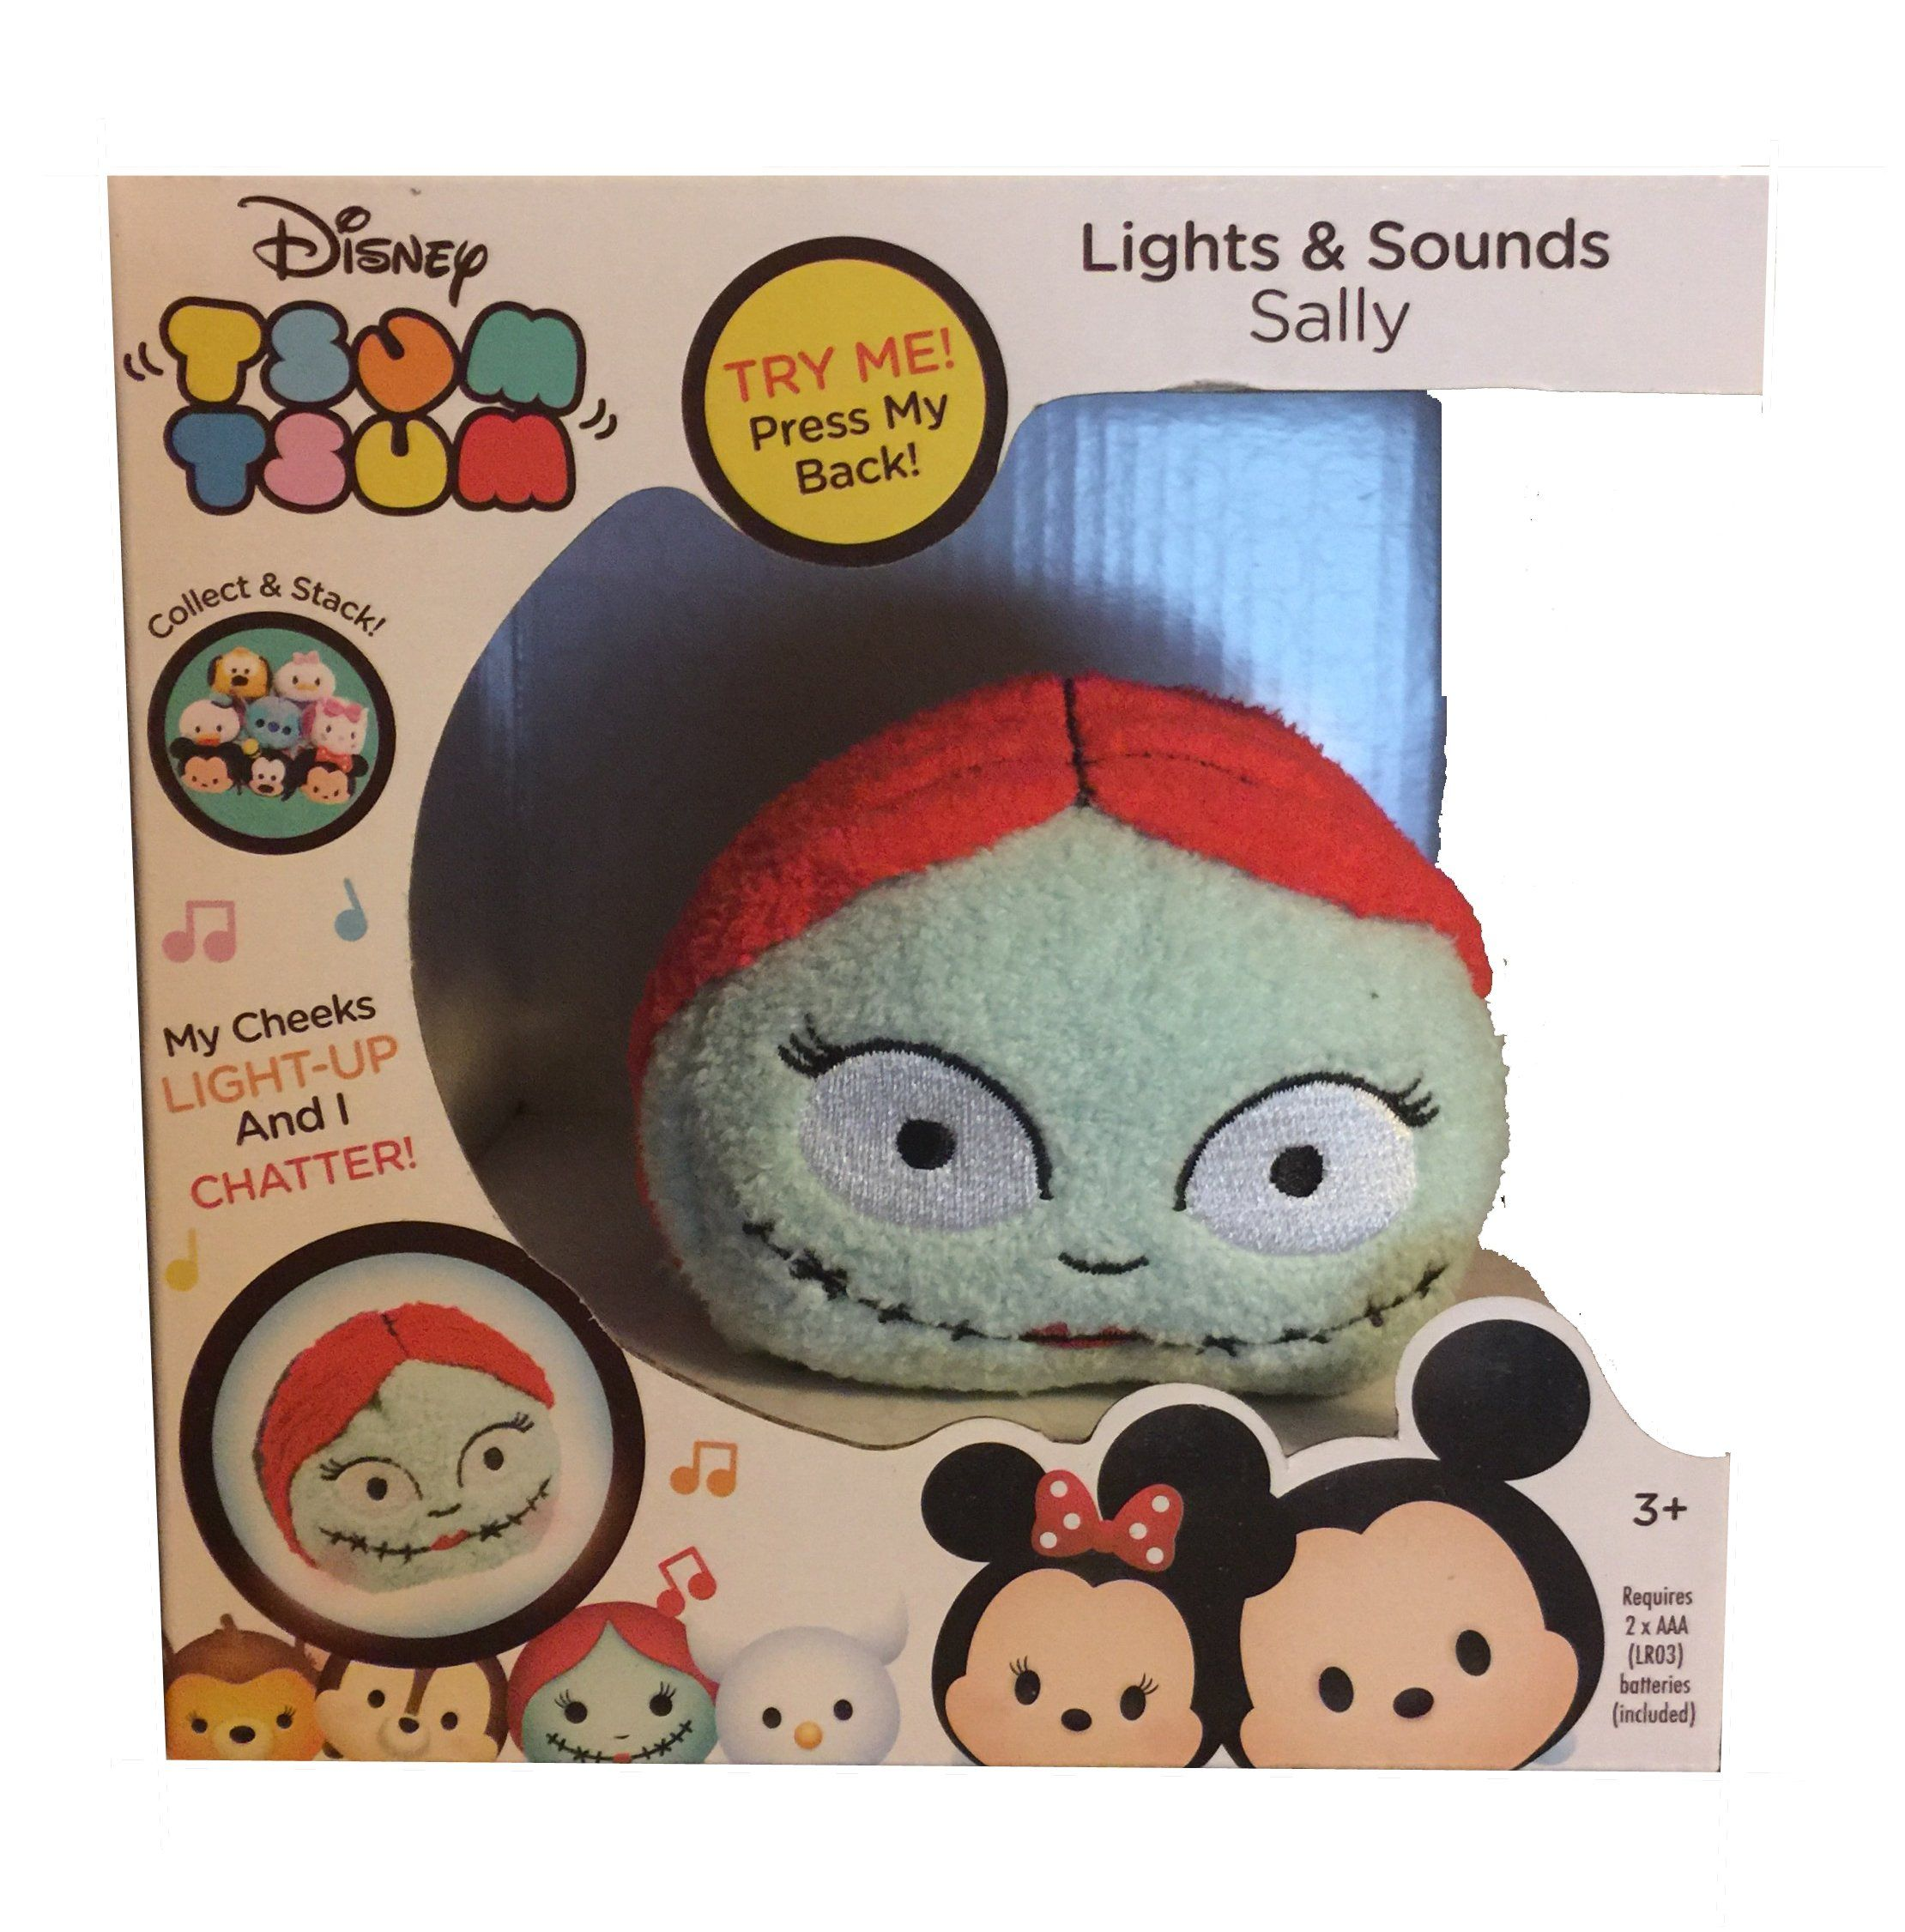 Disney Tsum Tsum Lights & Sounds Sally Plush -- Awesome products ...